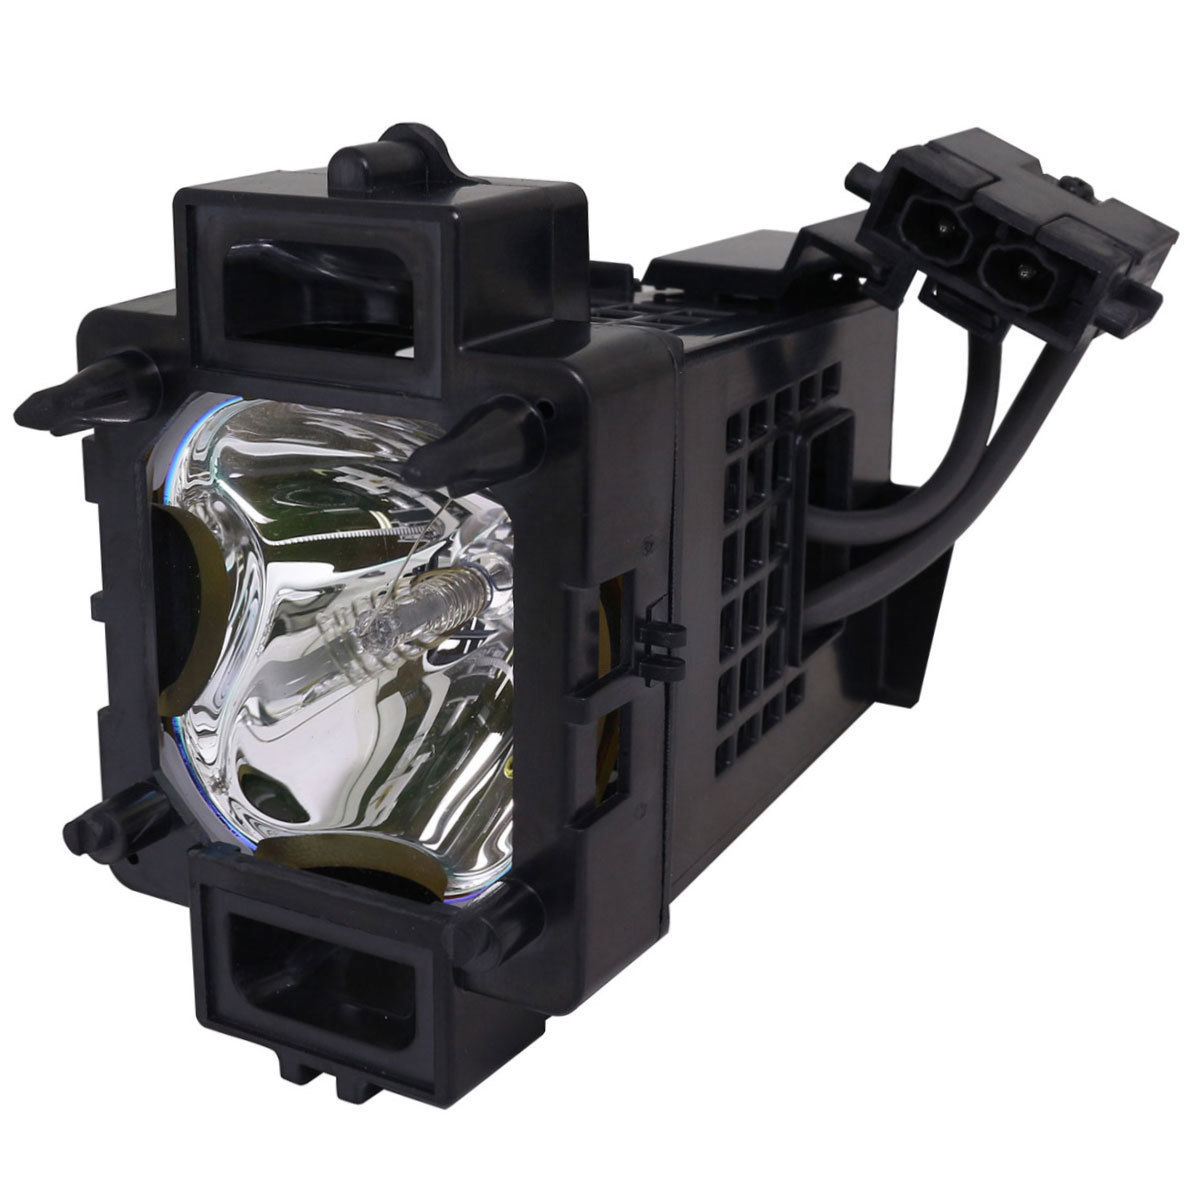 Lamp Housing For Sony KDS-R70XBR2 / KDSR70XBR2 Projection TV Bulb DLP osram lamp housing for epson v11h307220 projector dlp lcd bulb